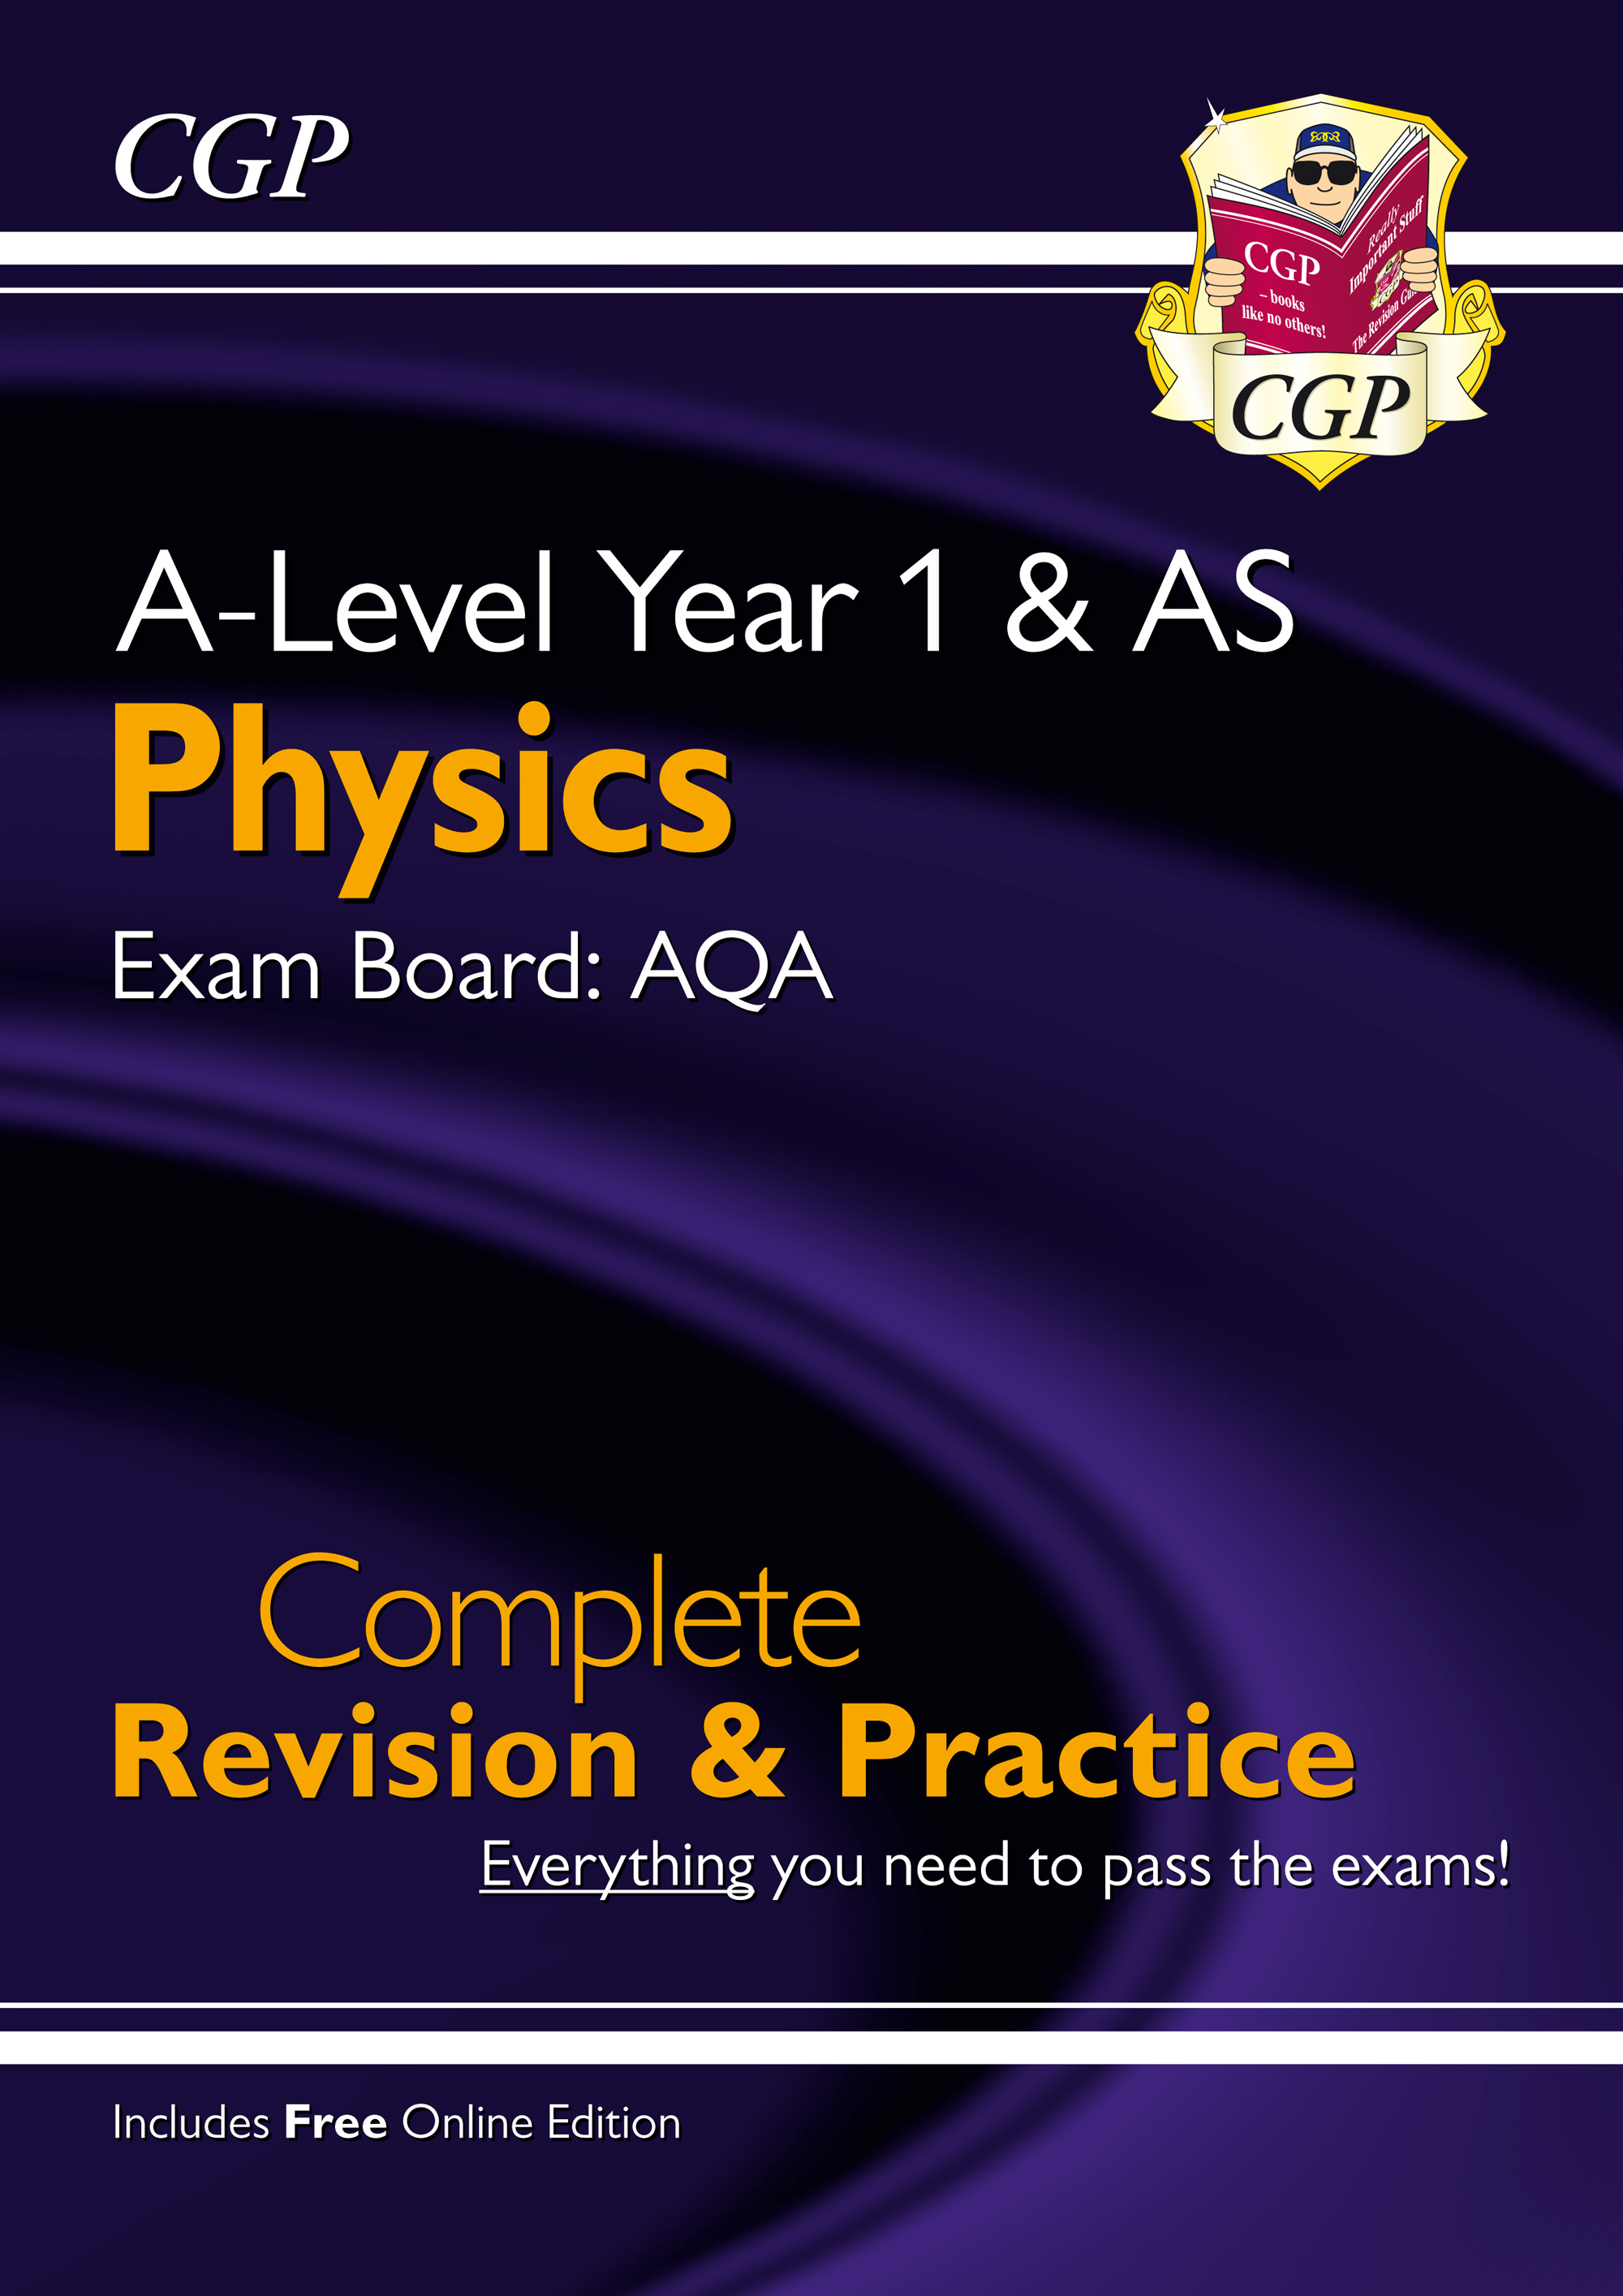 PAR54 - A-Level Physics: AQA Year 1 & AS Complete Revision & Practice with Online Edition